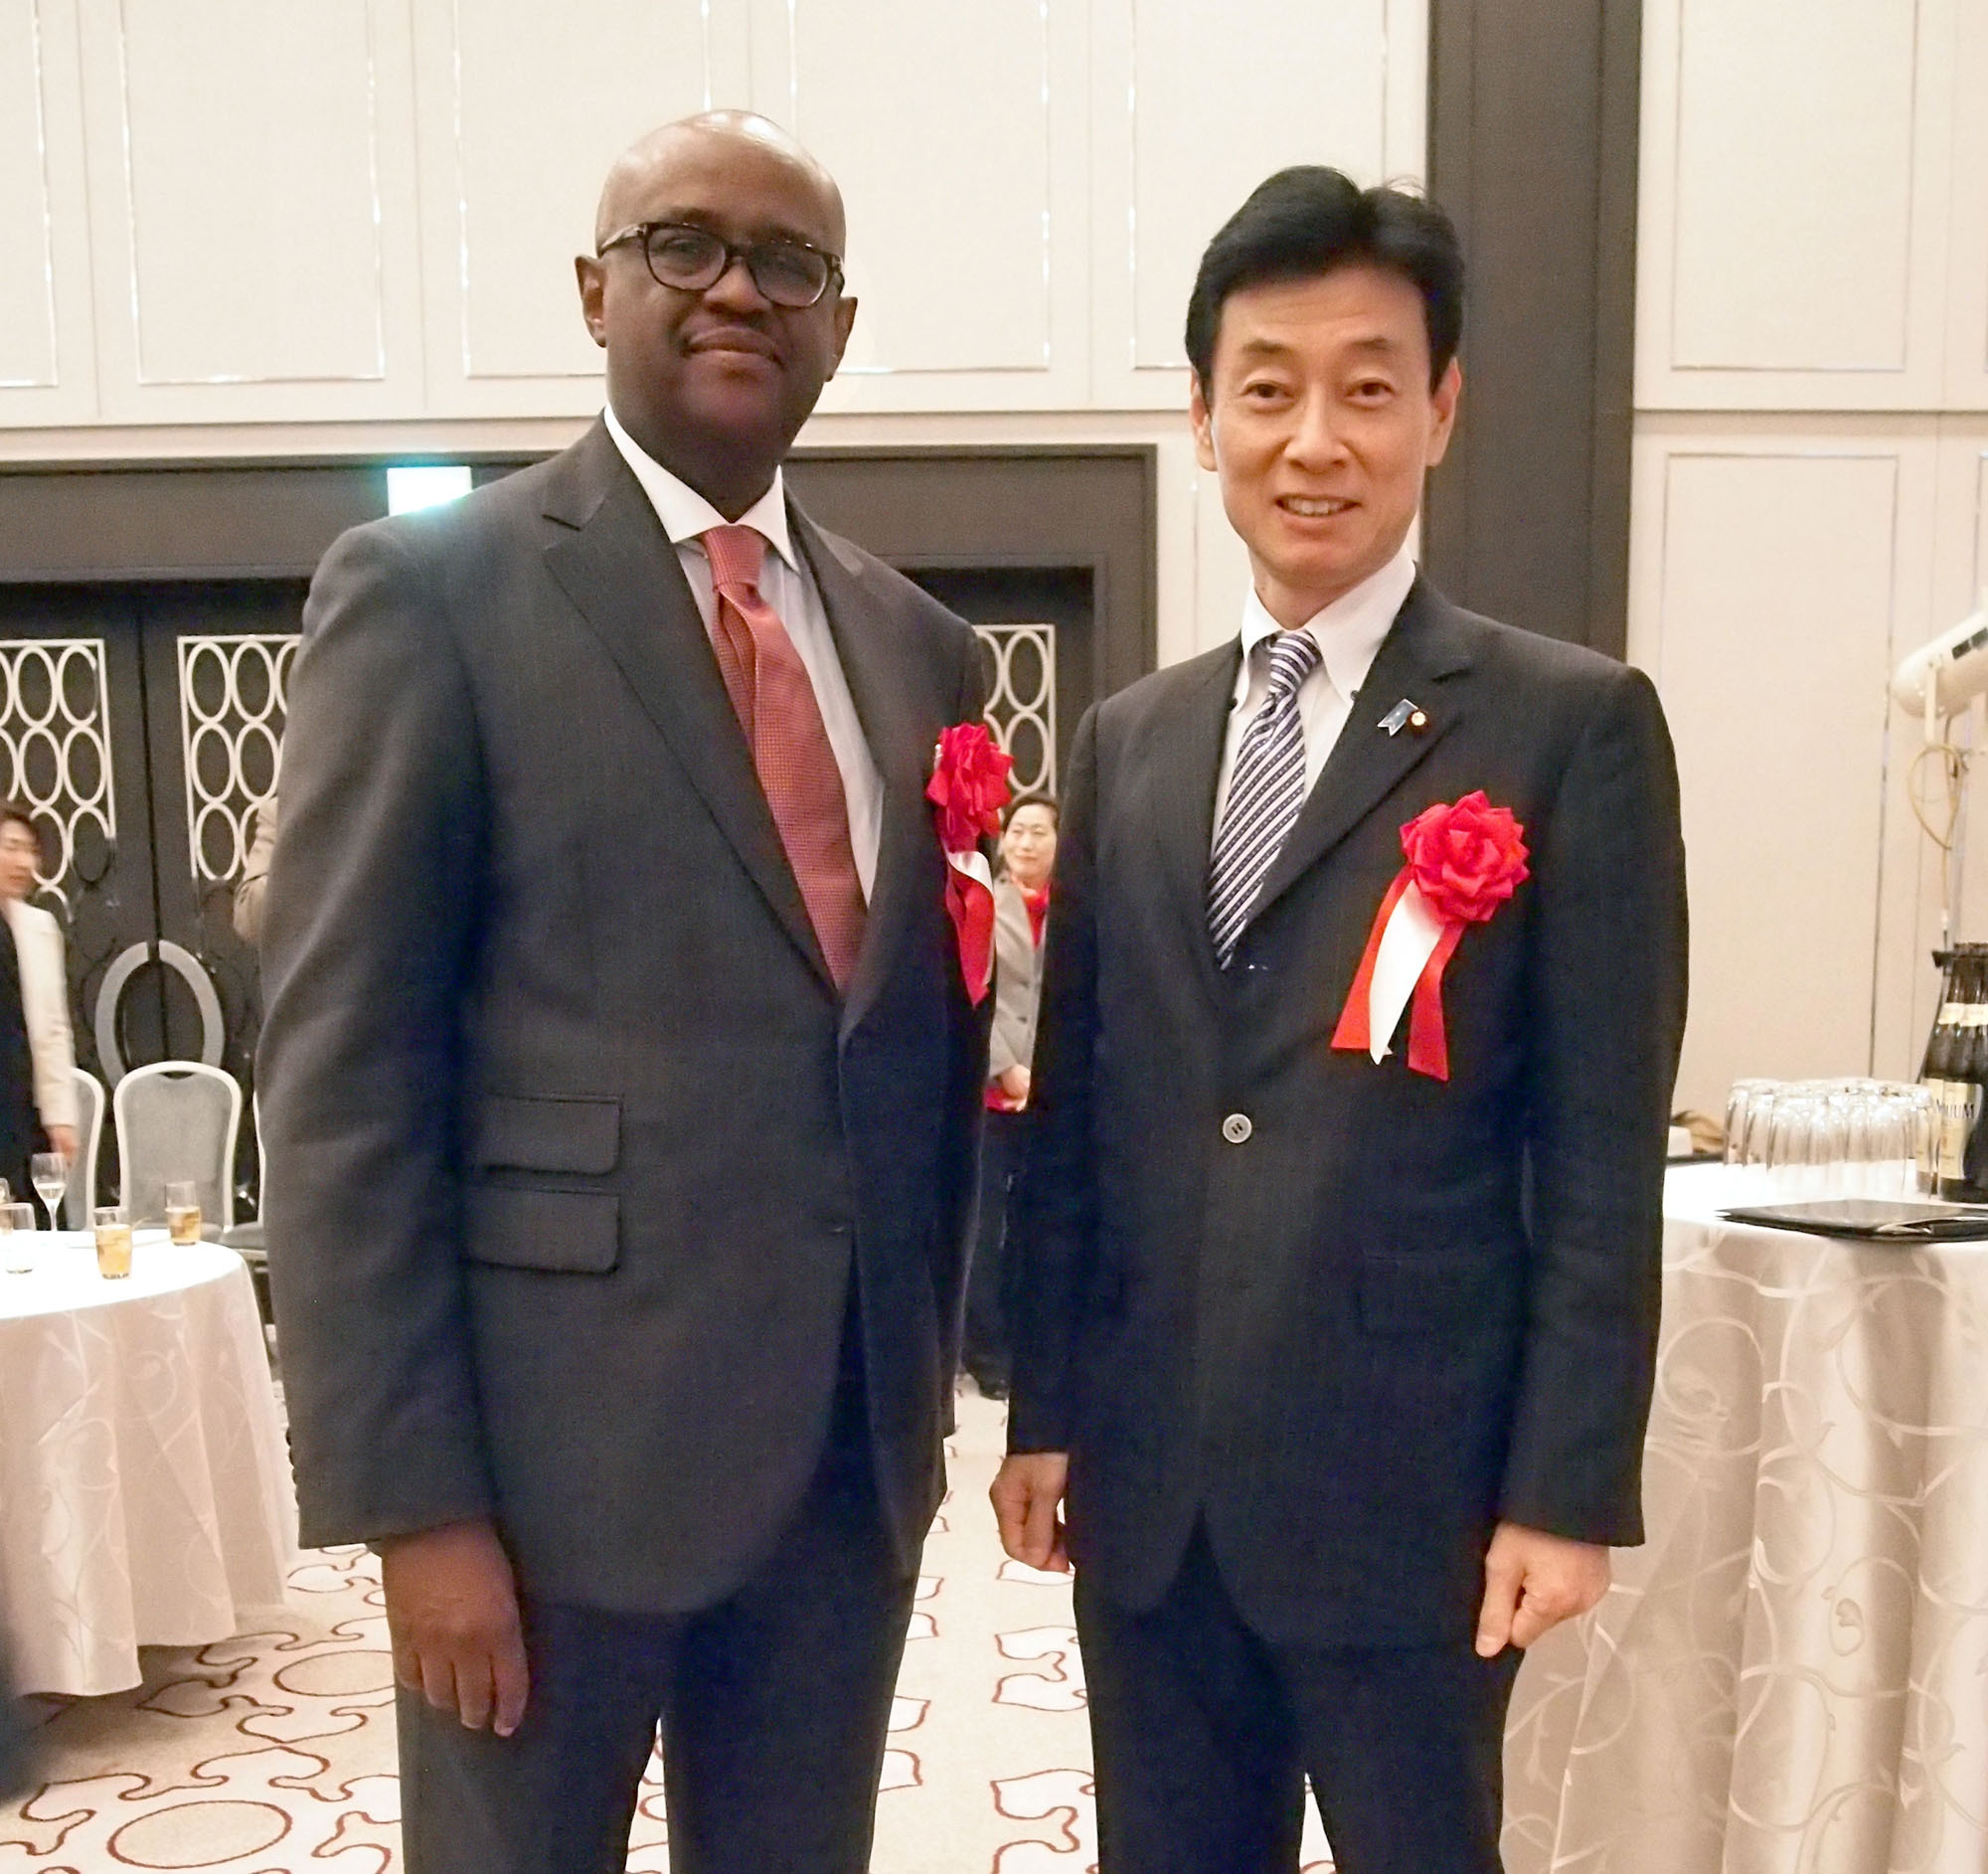 Kenyan Ambassador Solomon Karanja Maina (left) poses for a photo with Deputy Chief Cabinet Secretary Yasutoshi Nishimura during a reception to celebrate the 54th anniversary of Kenya's independence at Tokyo Marriott Hotel on Dec. 12. |   EDLEEN OTHMAN